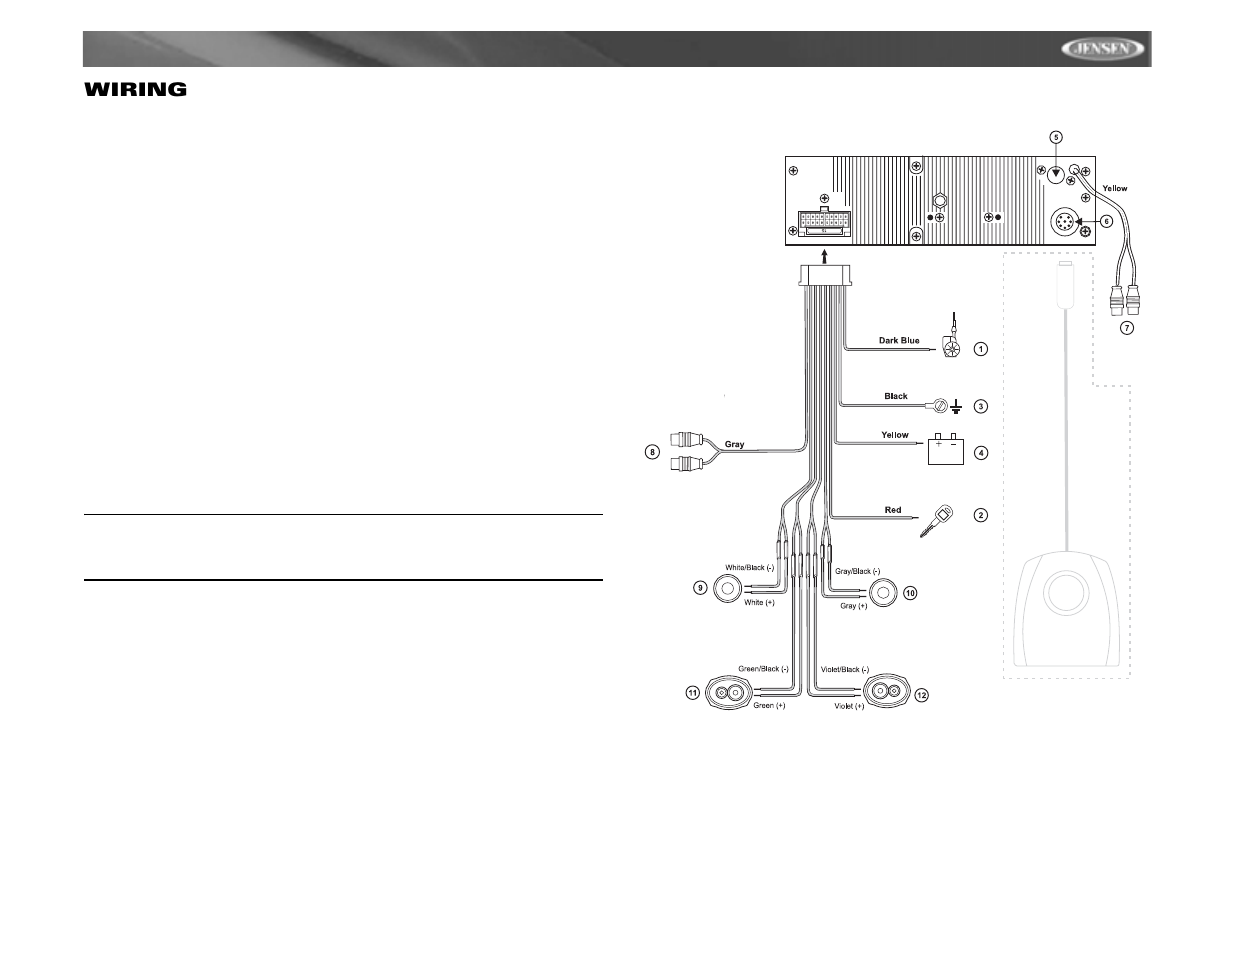 mp6211, wiring | jensen mp6211 user manual | page 7 / 52 jensen furnace wiring diagram jensen radio wiring diagram #11